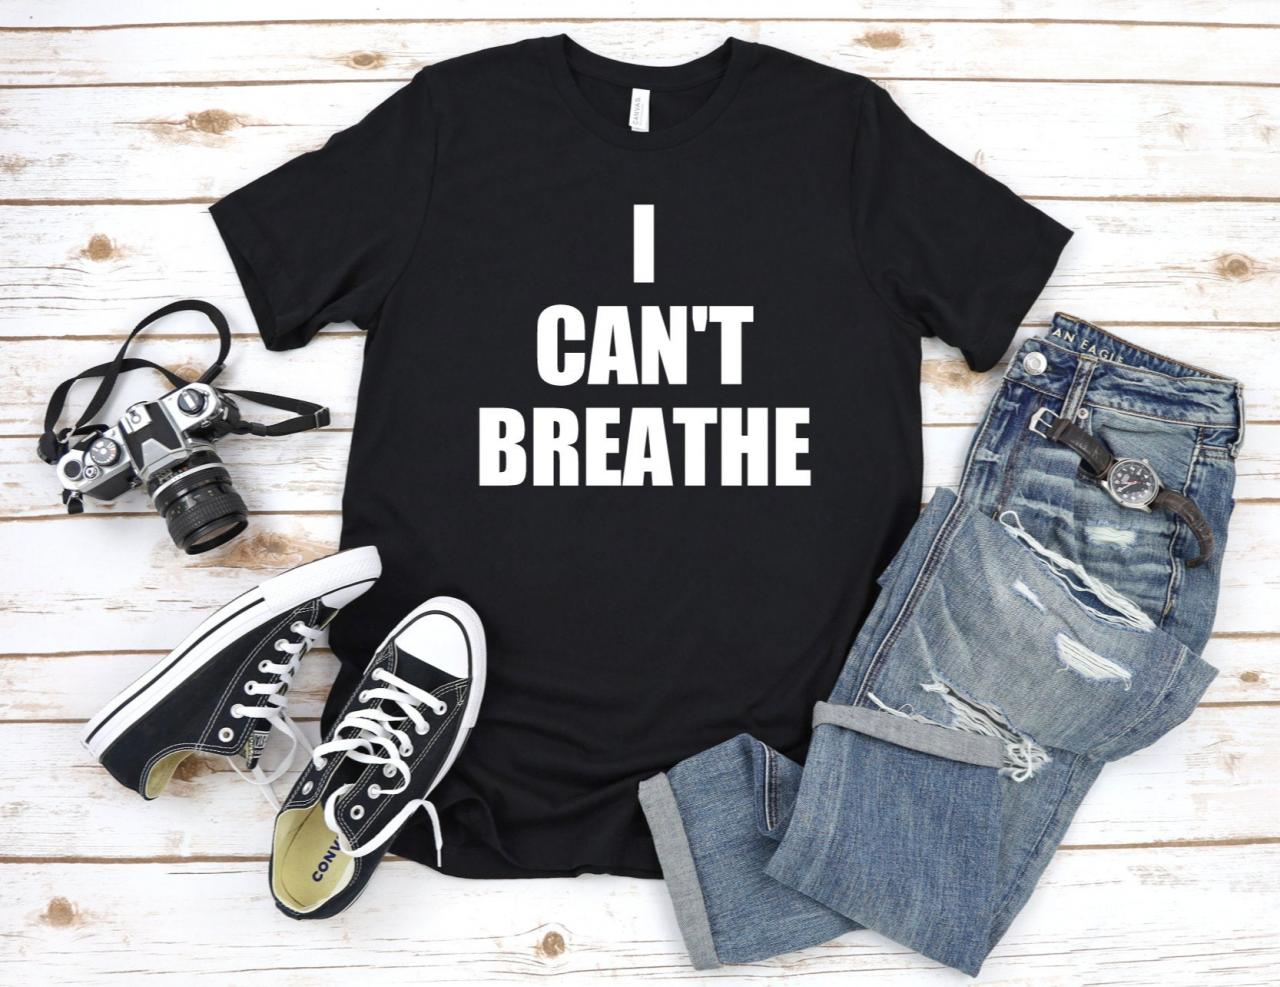 I Can't Breathe Tshirt, George Floyd Shirt, Justice for George Floyd, Black Lives Matter